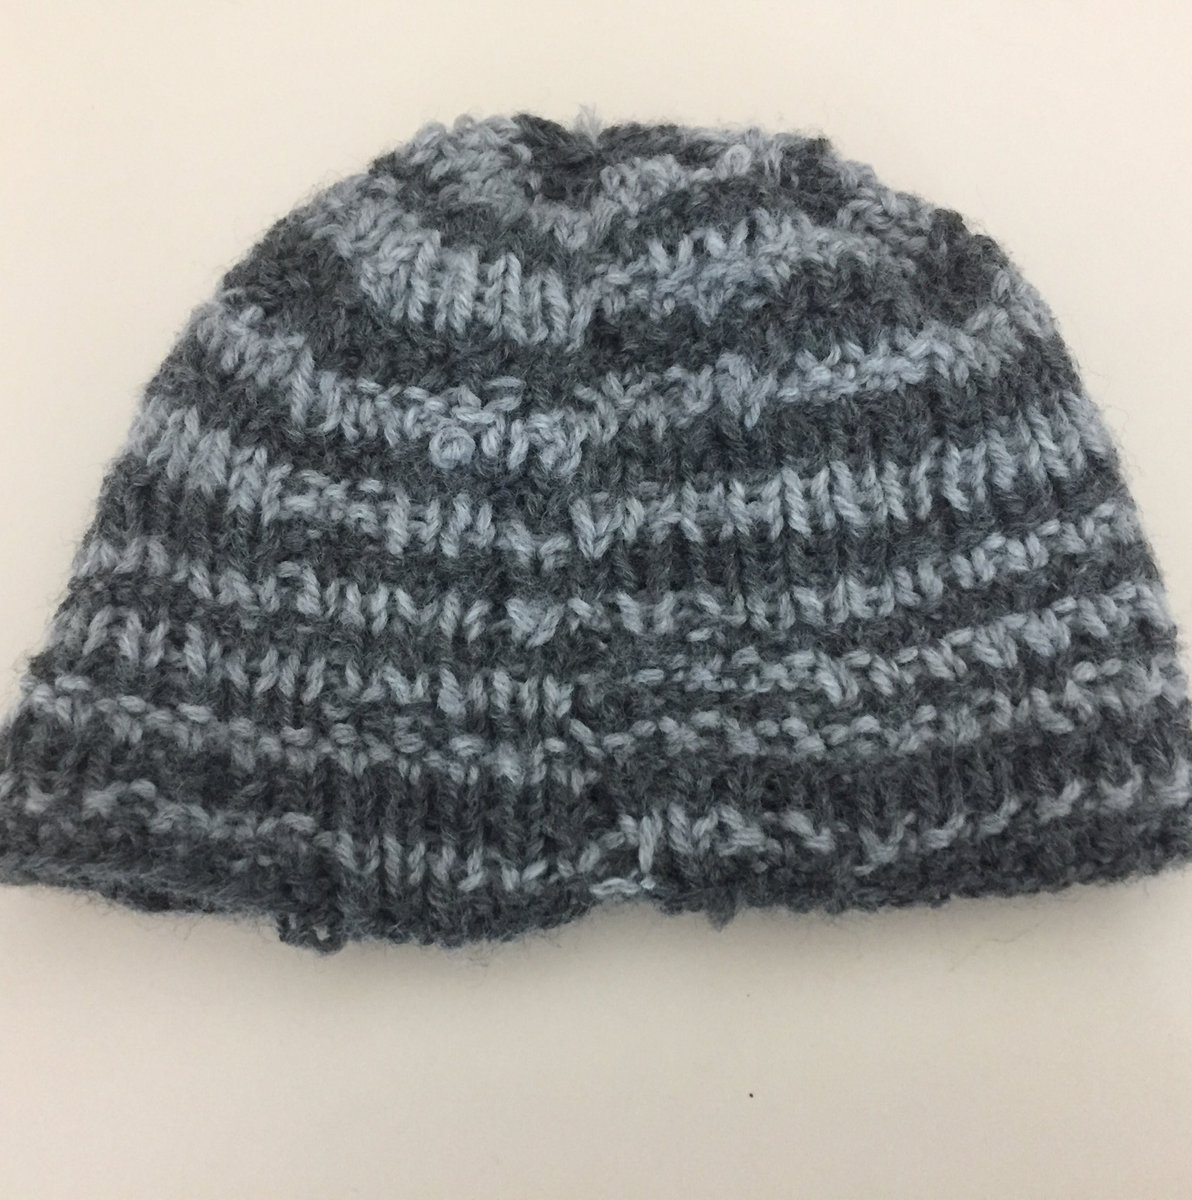 First hat: Shaping the crown